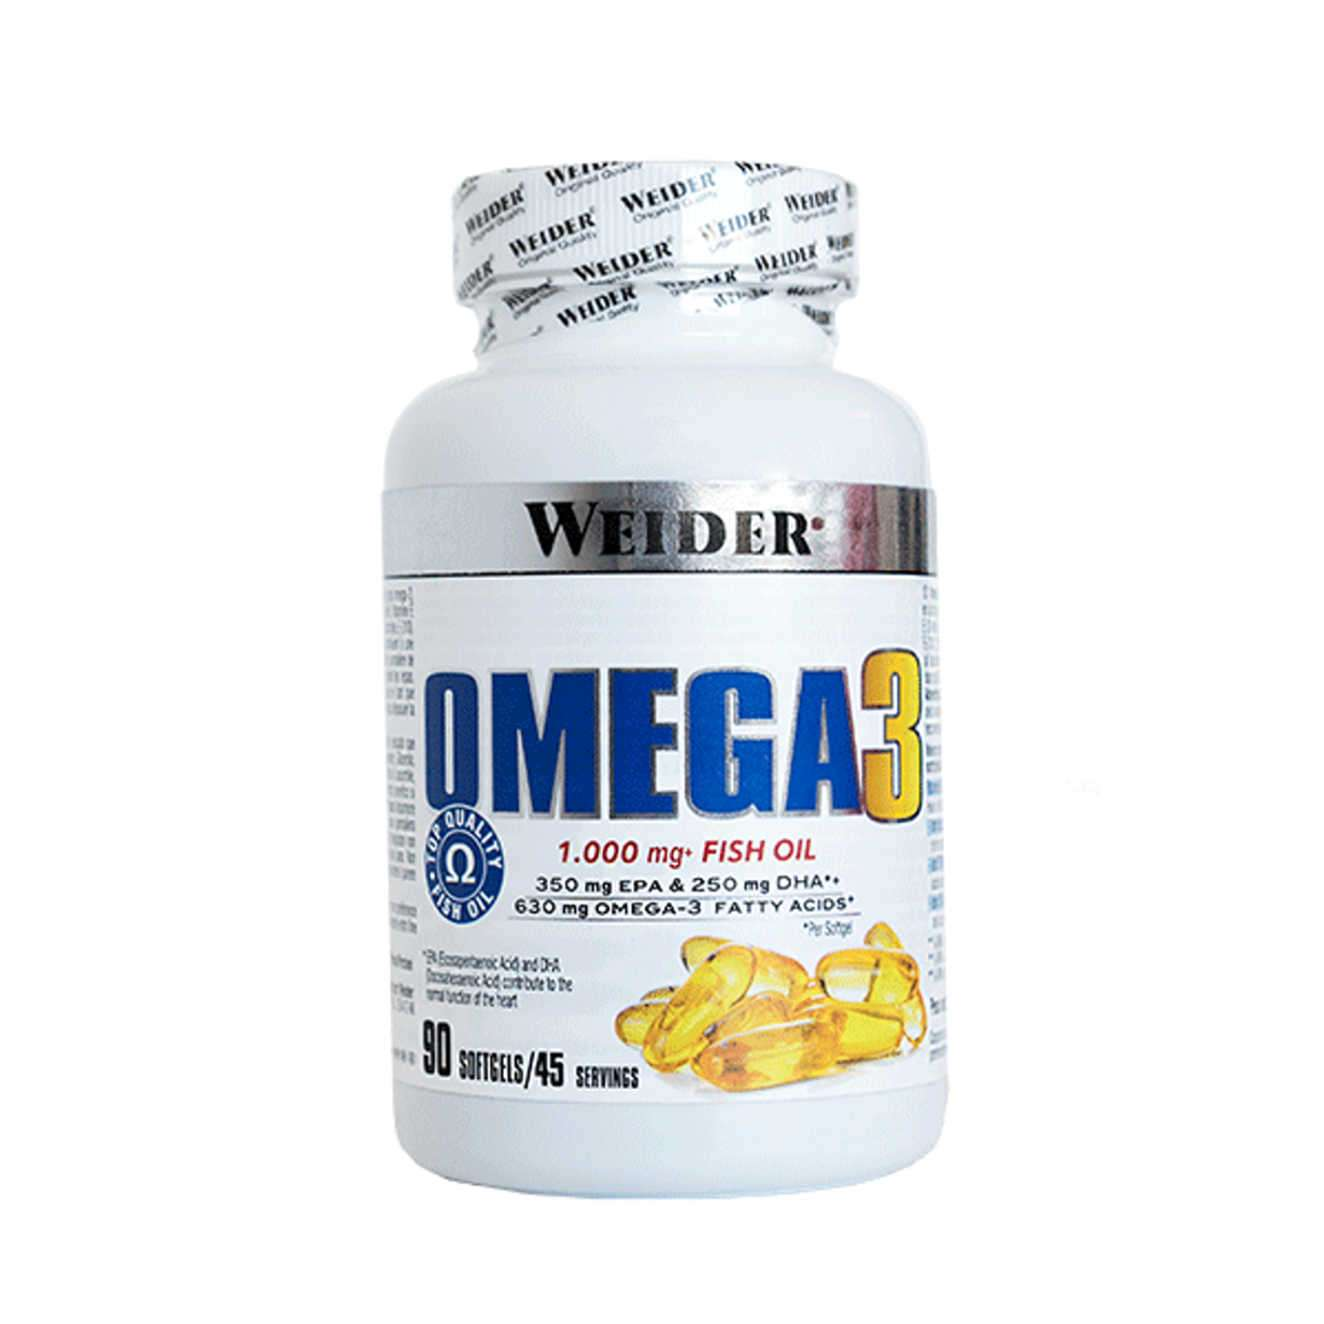 OMEGA3 - 90 softgels